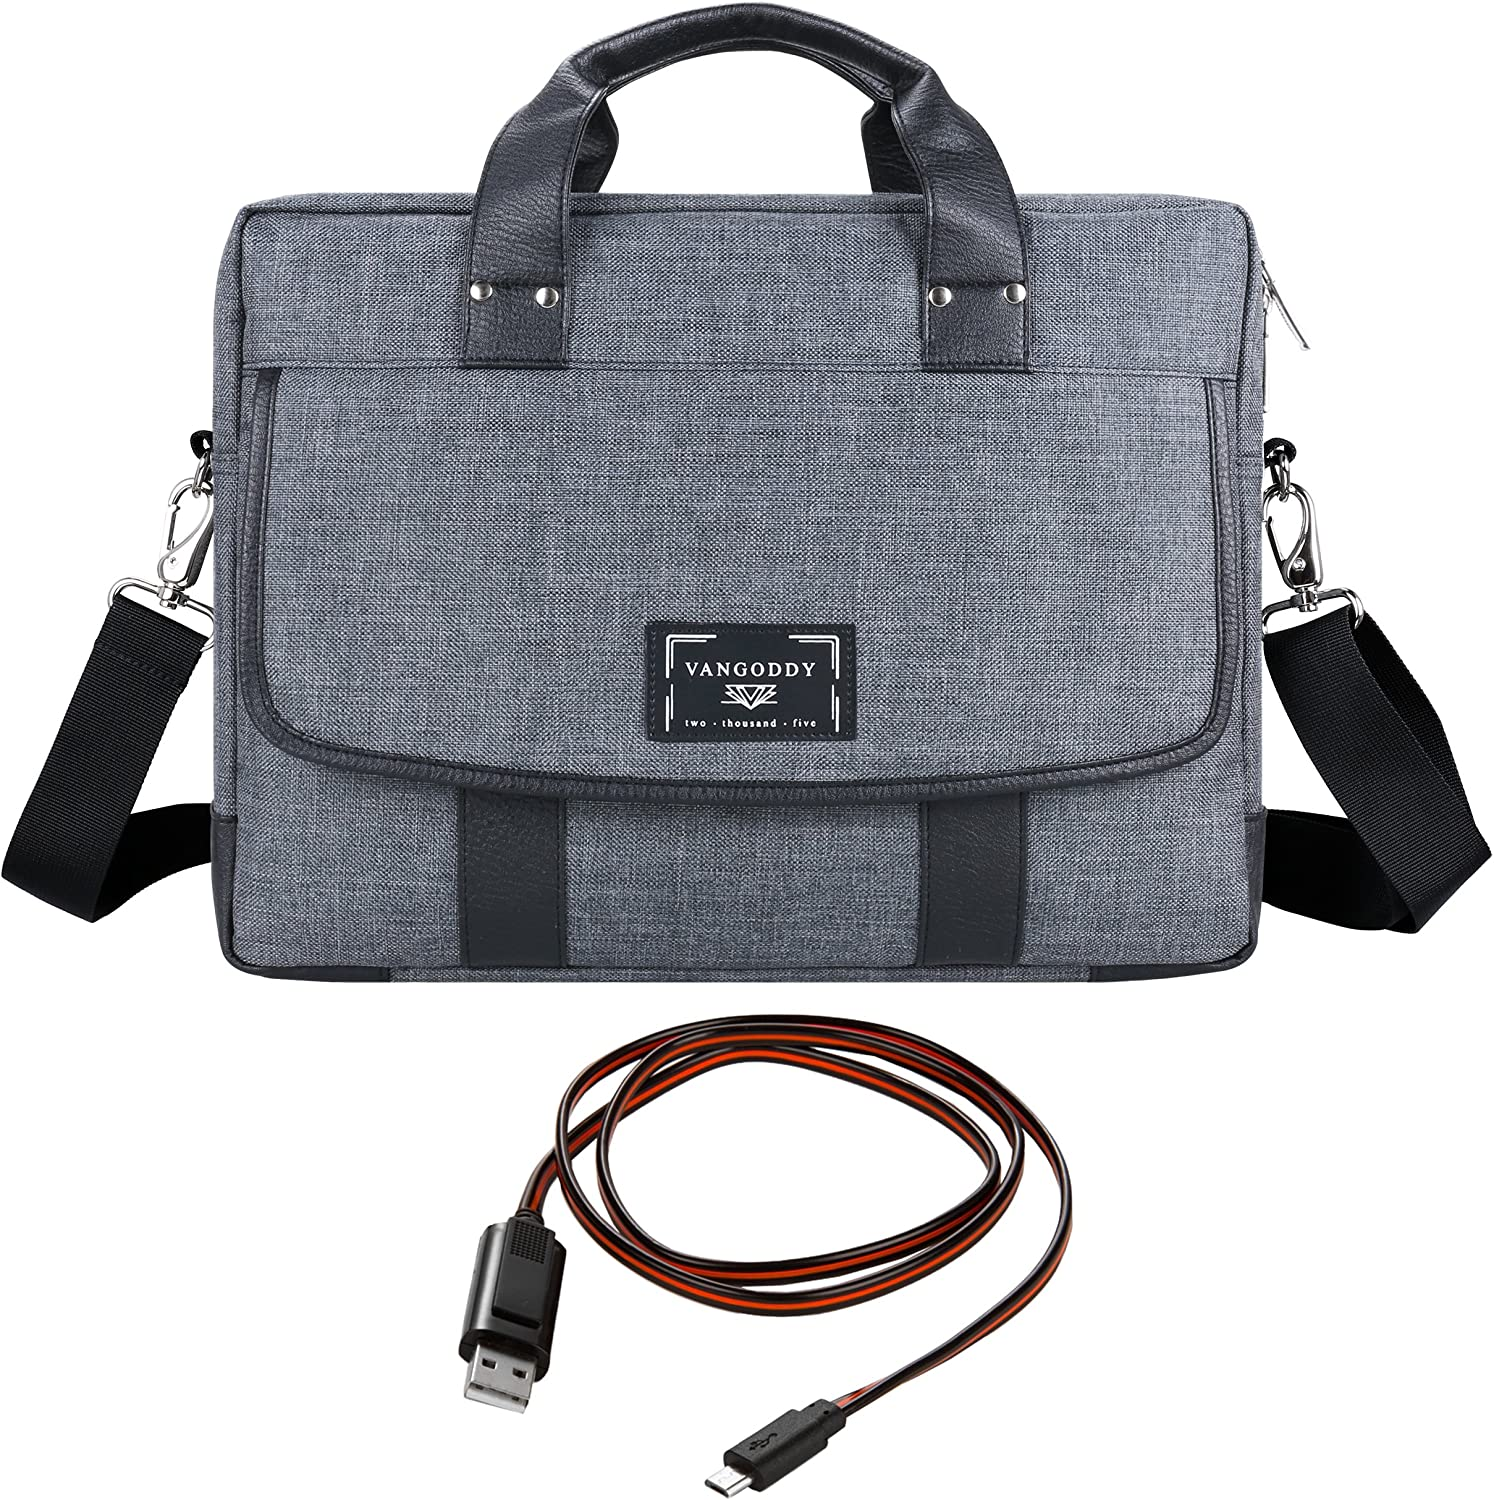 Vangoddy Chrono Grey Universal Tote Messenger Bag for Acer Aspire R Sync and Charge Cable Chromebook 13.3 14 Tablet Laptop Aspire One